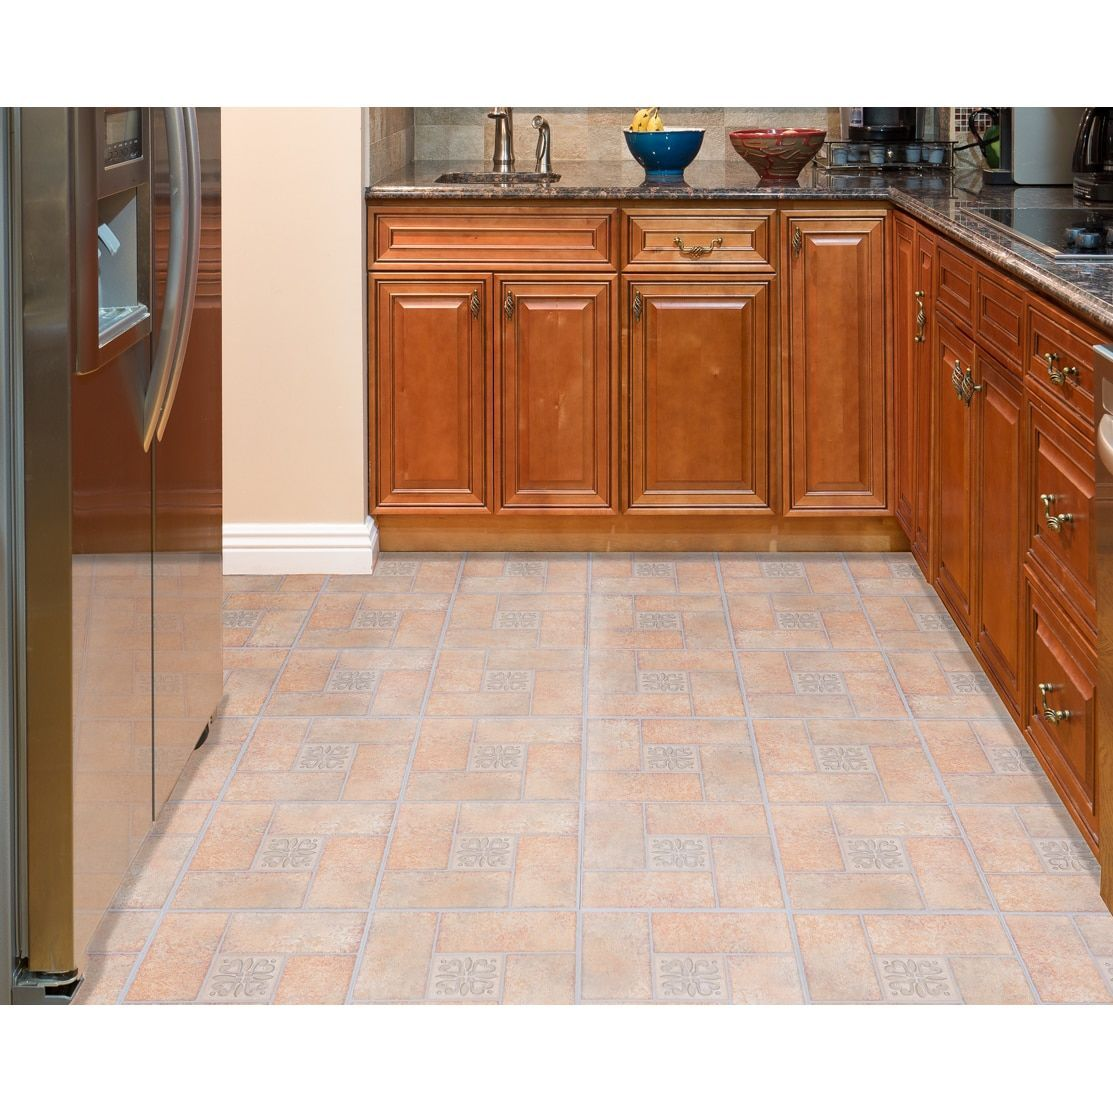 Comfortable 13X13 Floor Tile Huge 3 X 6 Beveled Subway Tile Square 3D Ceramic Tiles 3X6 Marble Subway Tile Young 3X6 Subway Tile Blue4 1 4 X 4 1 4 Ceramic Tile Floor Tile : 12x12 Vinyl Floor Tiles 12x12 Vinyl Self Stick Floor ..